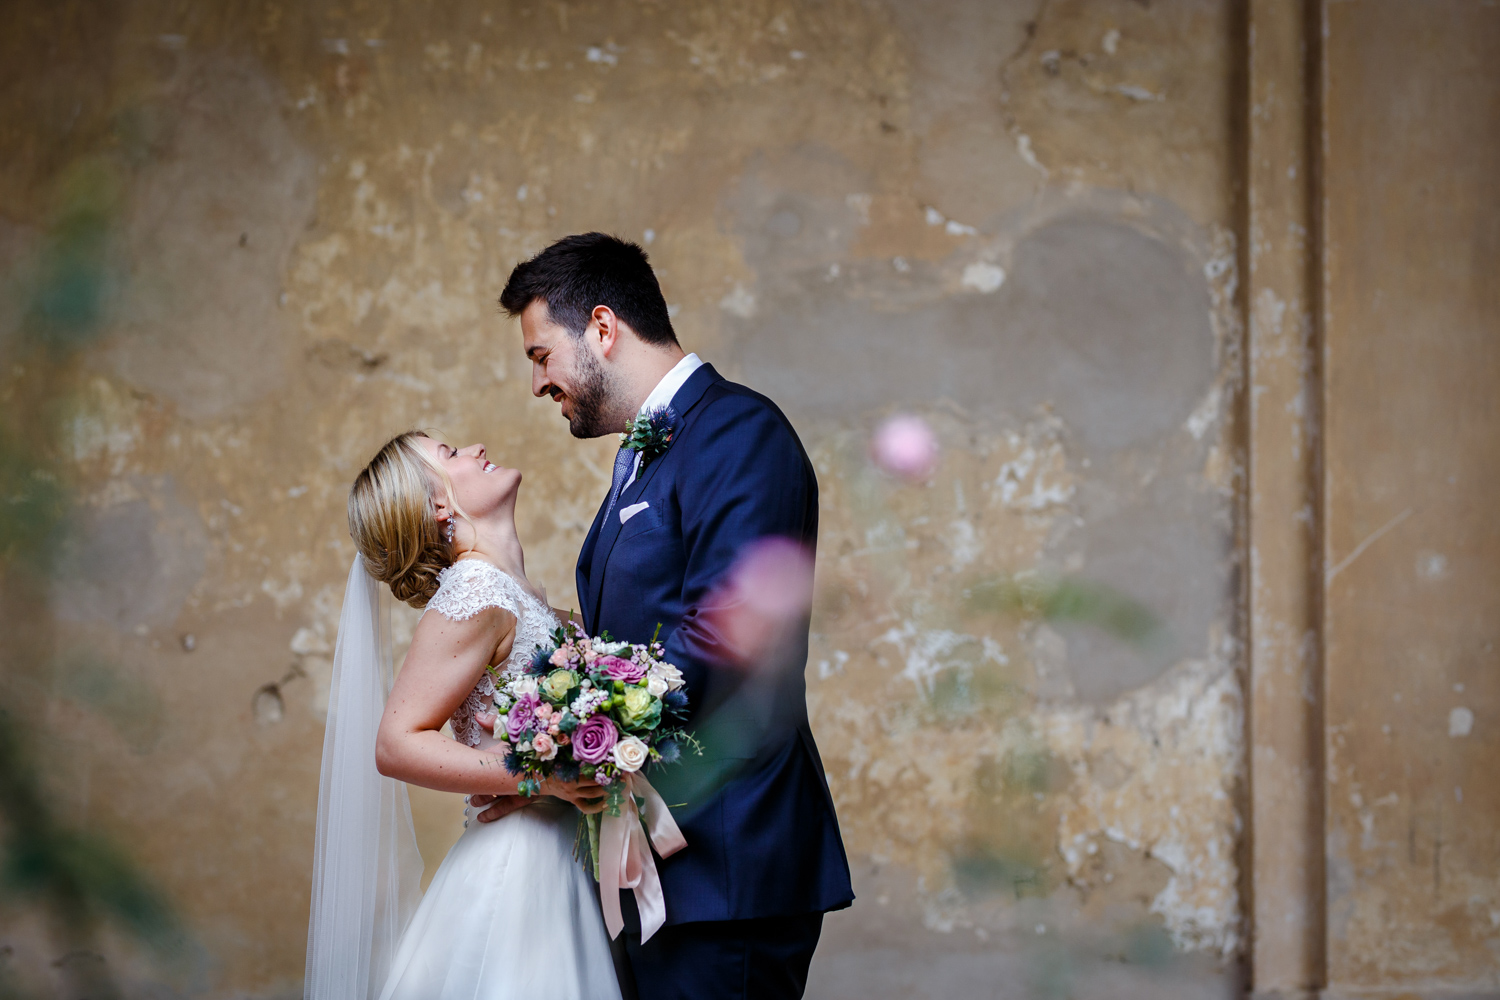 Katy & Tom's Villa Catignano Wedding in Siena, Italy